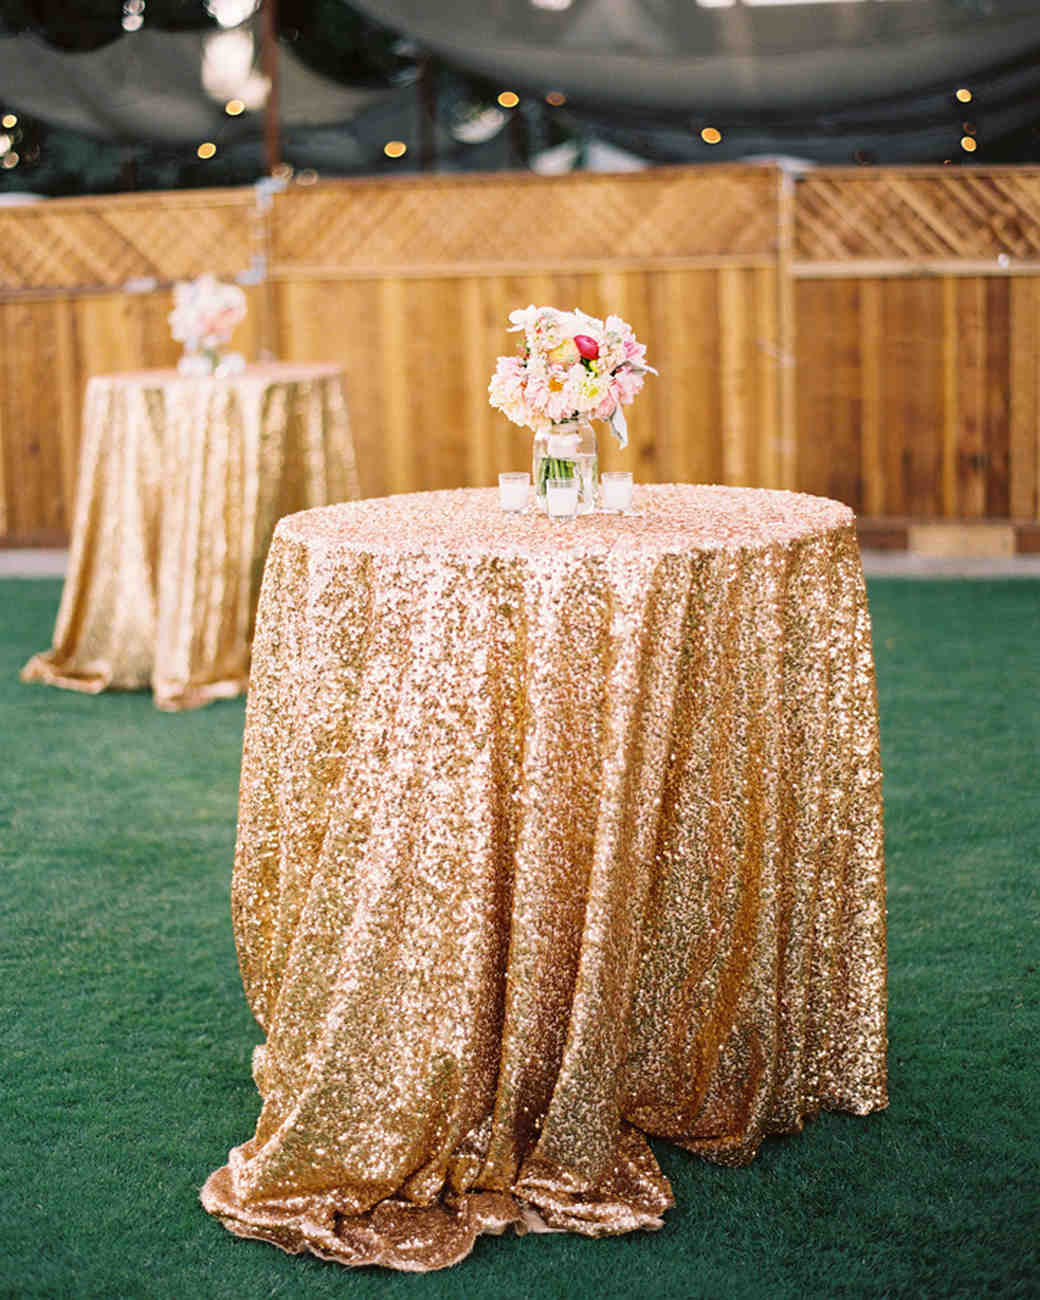 Gold Wedding Decorations: Rose Gold Wedding Ideas That Make A Statement